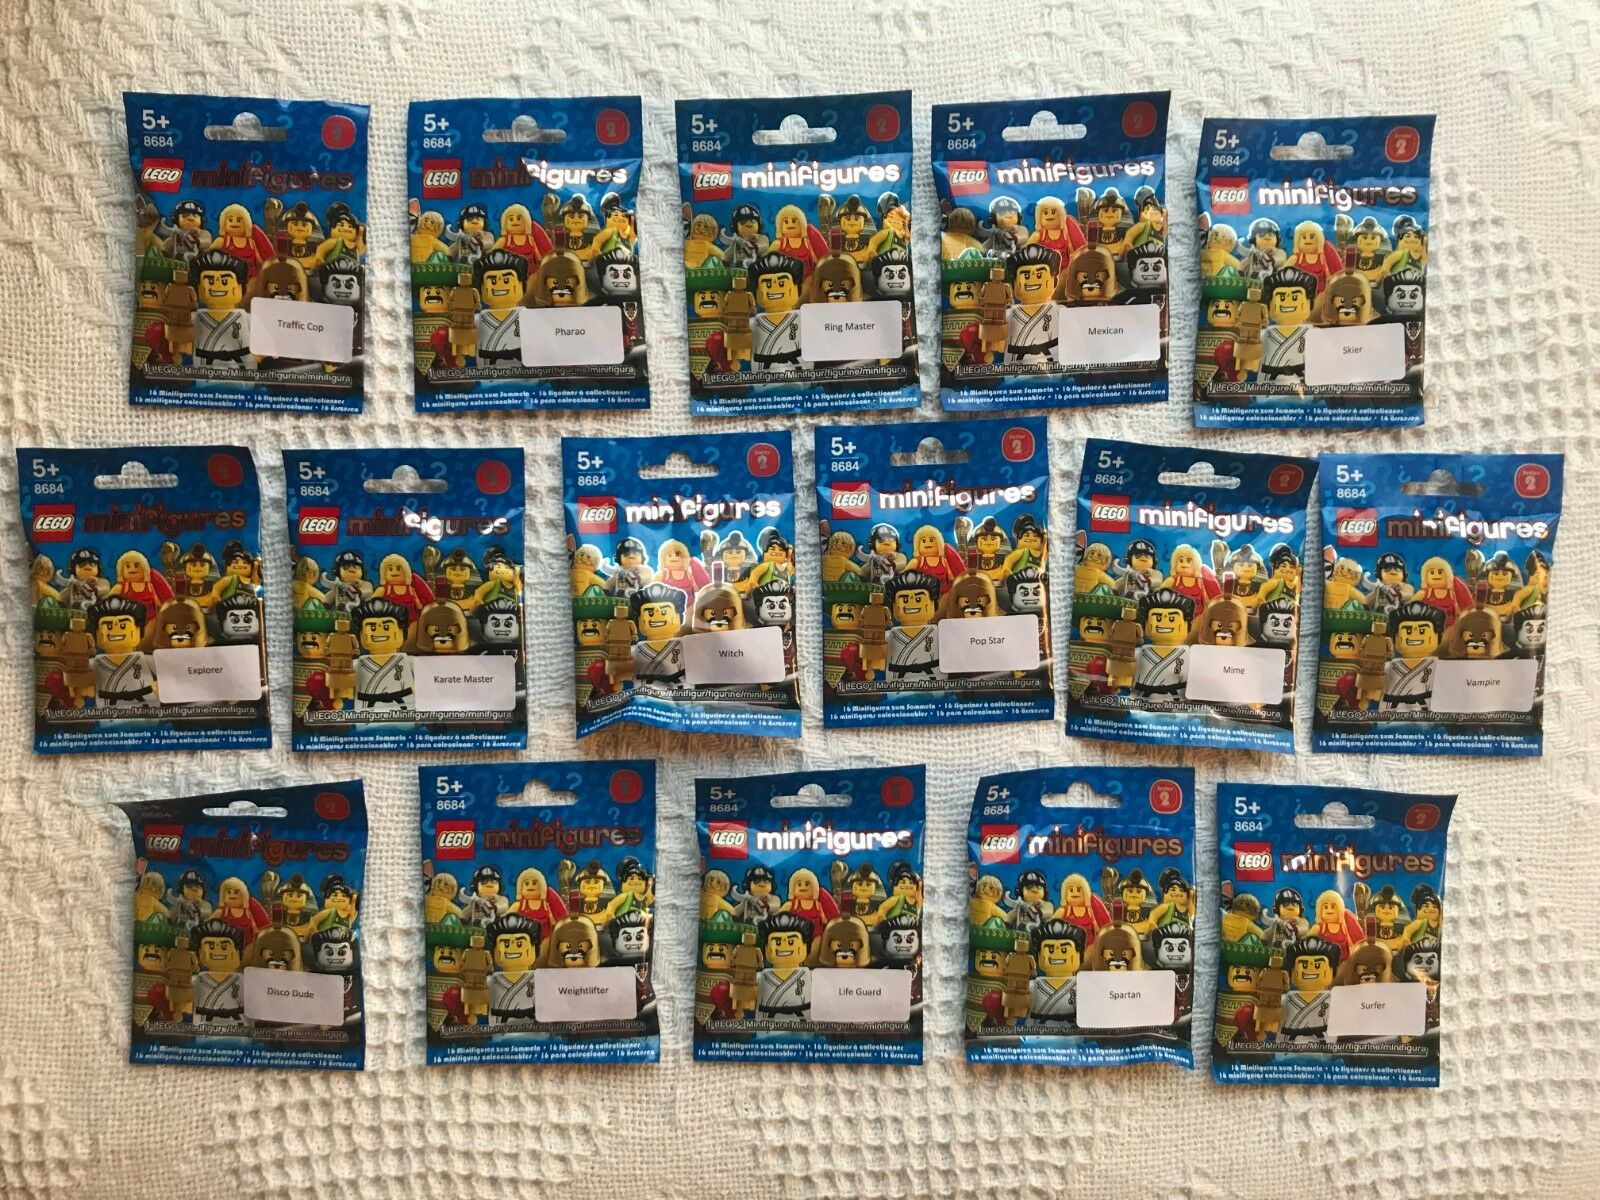 LEGO 8684 Collectable Minifigures Series 2 Complete Set - Brand New Sealed